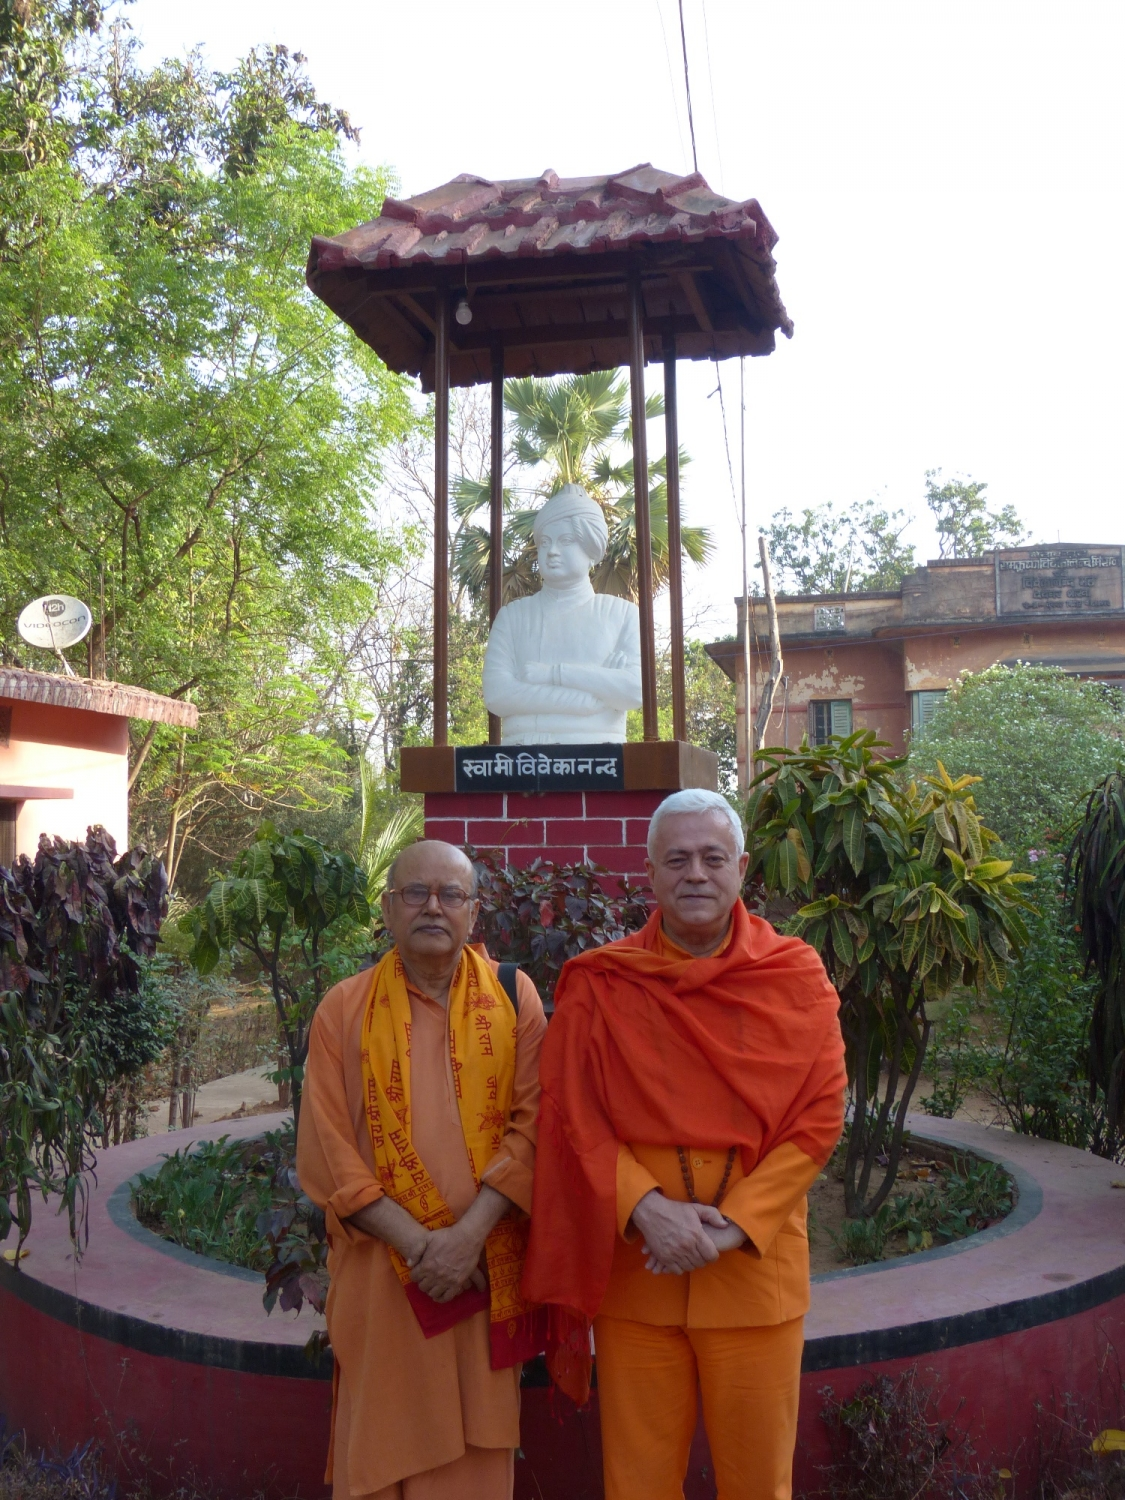 Meeting of H.H. Jagat Guru Amrta Sūryānanda Mahā Rāja with Svámin Malgalteertam - Dehogar, India - 2016, May